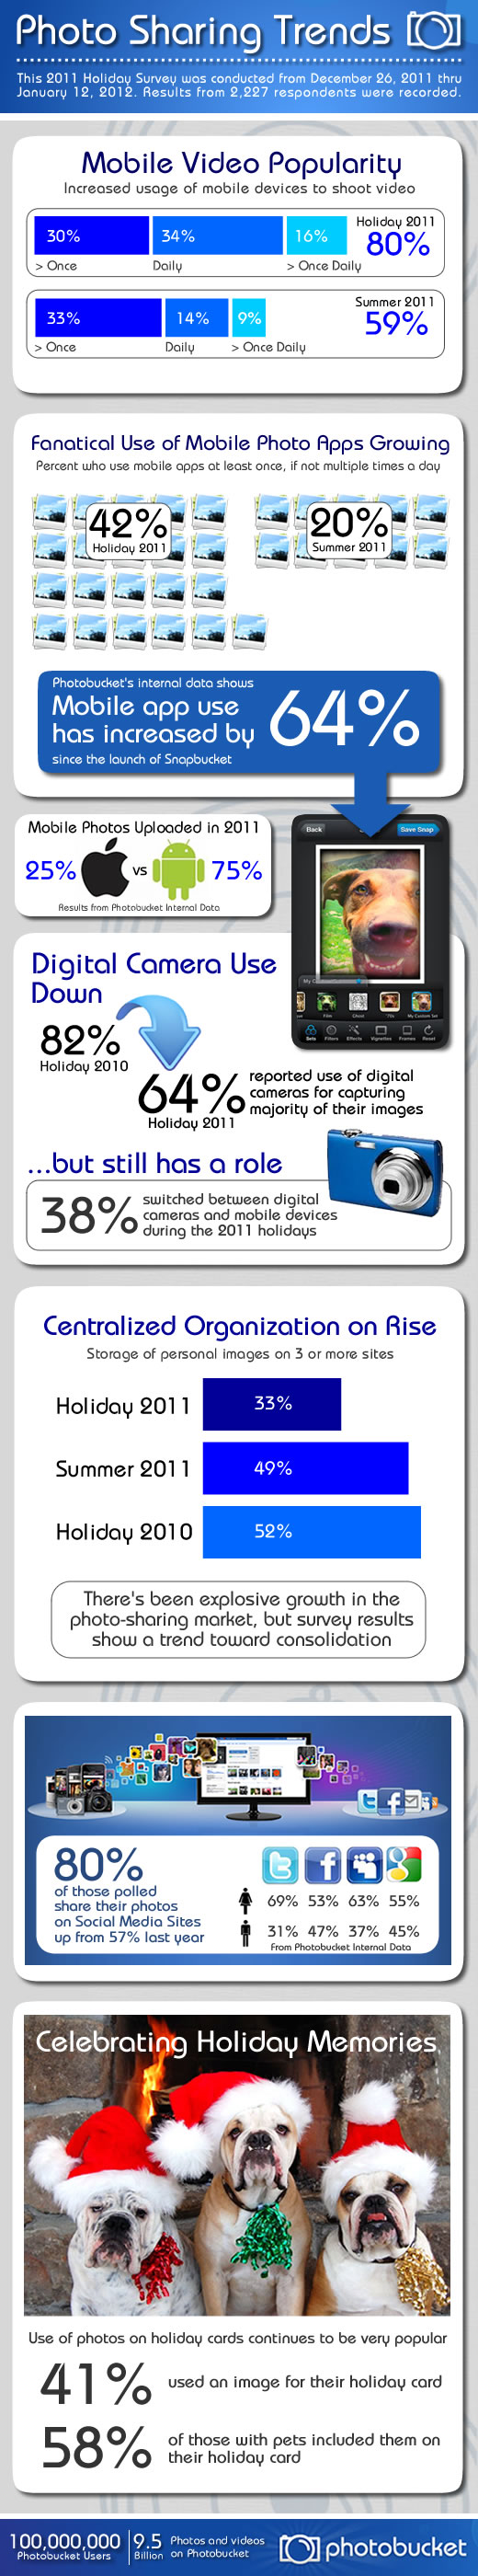 Photo Sharing Trends 2011